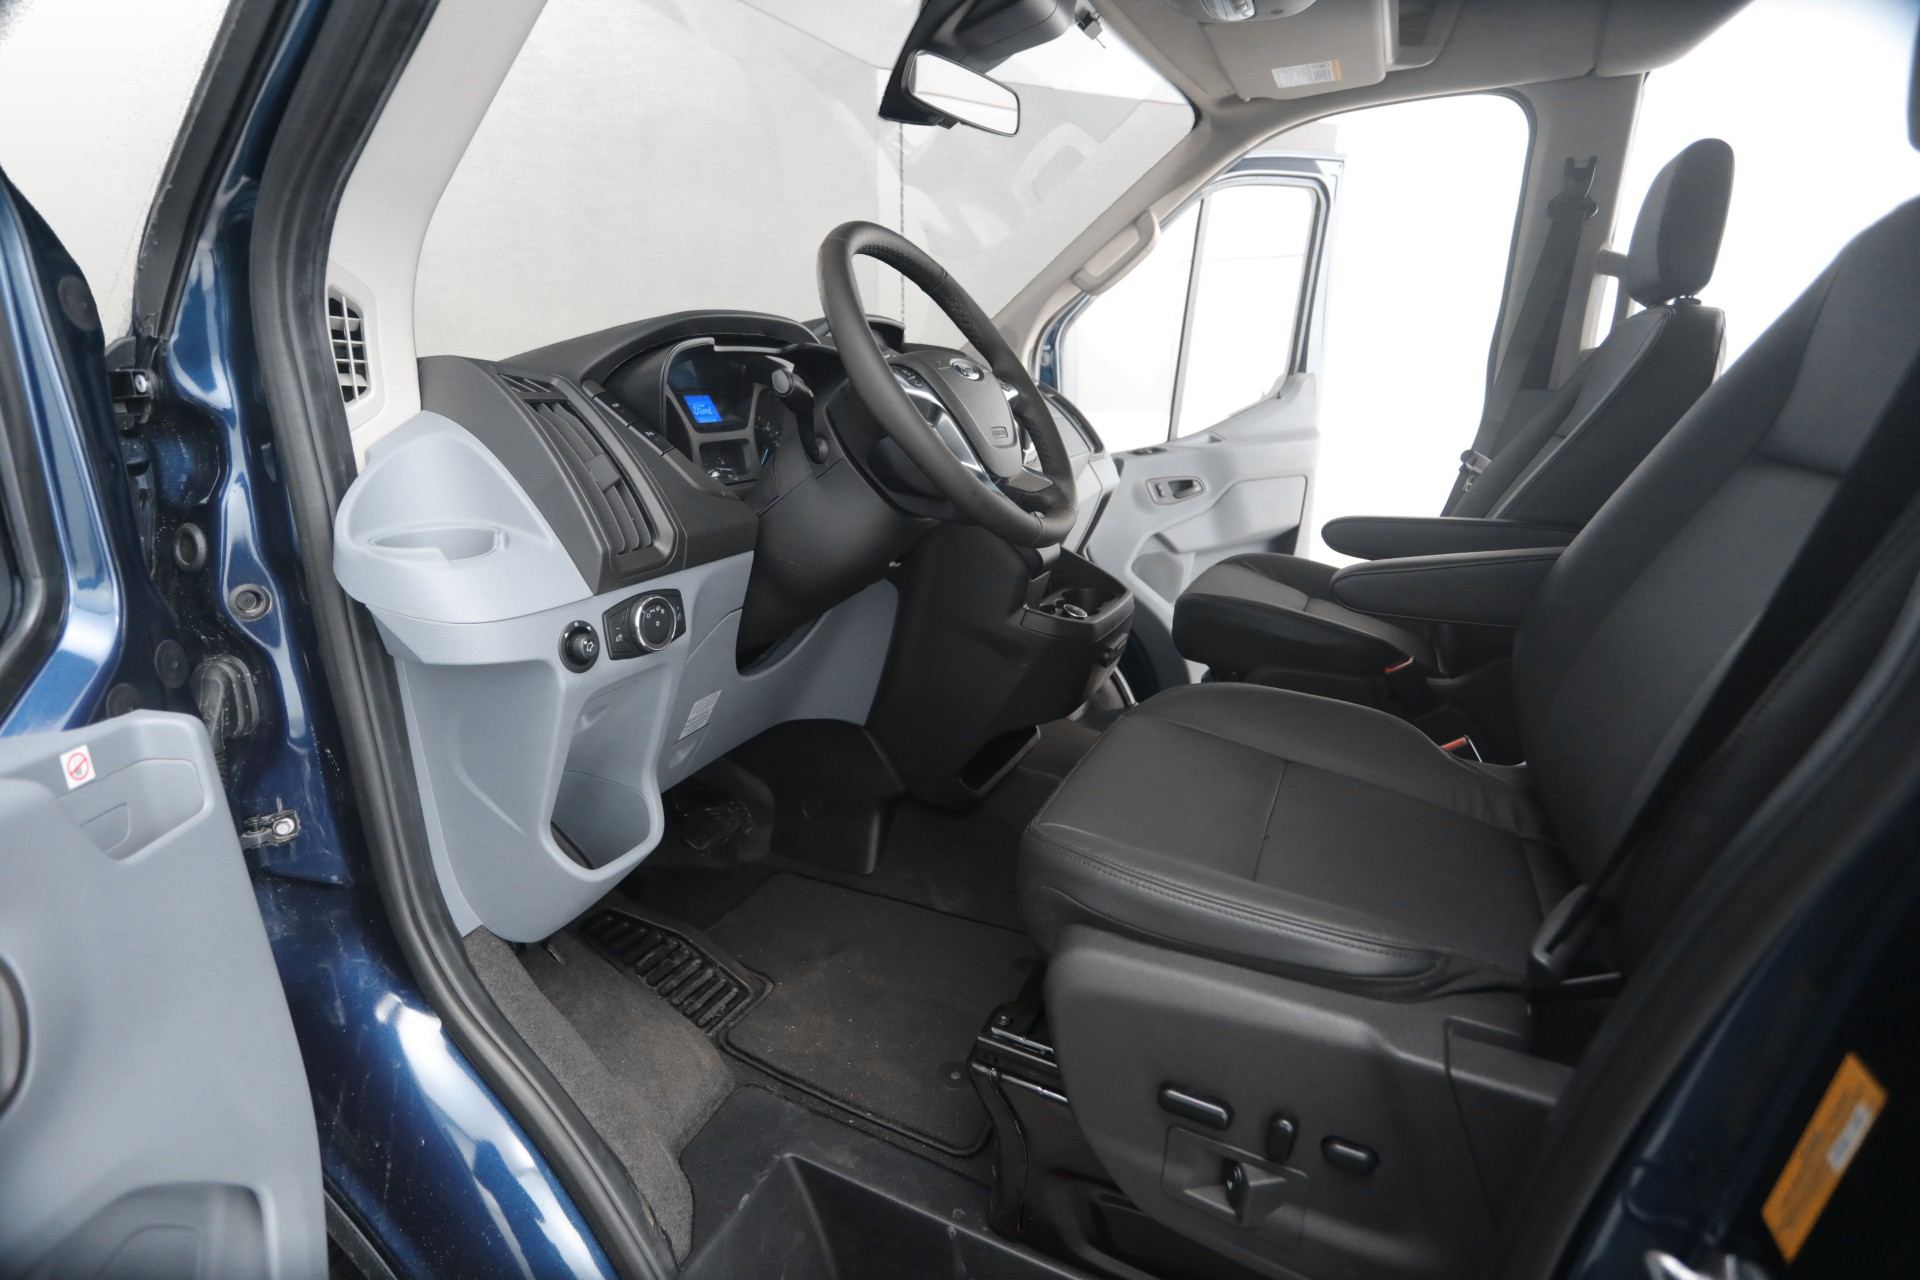 Ford-Transit-Abilitrax-Wheelchair-Van-Interior-6 - Creative